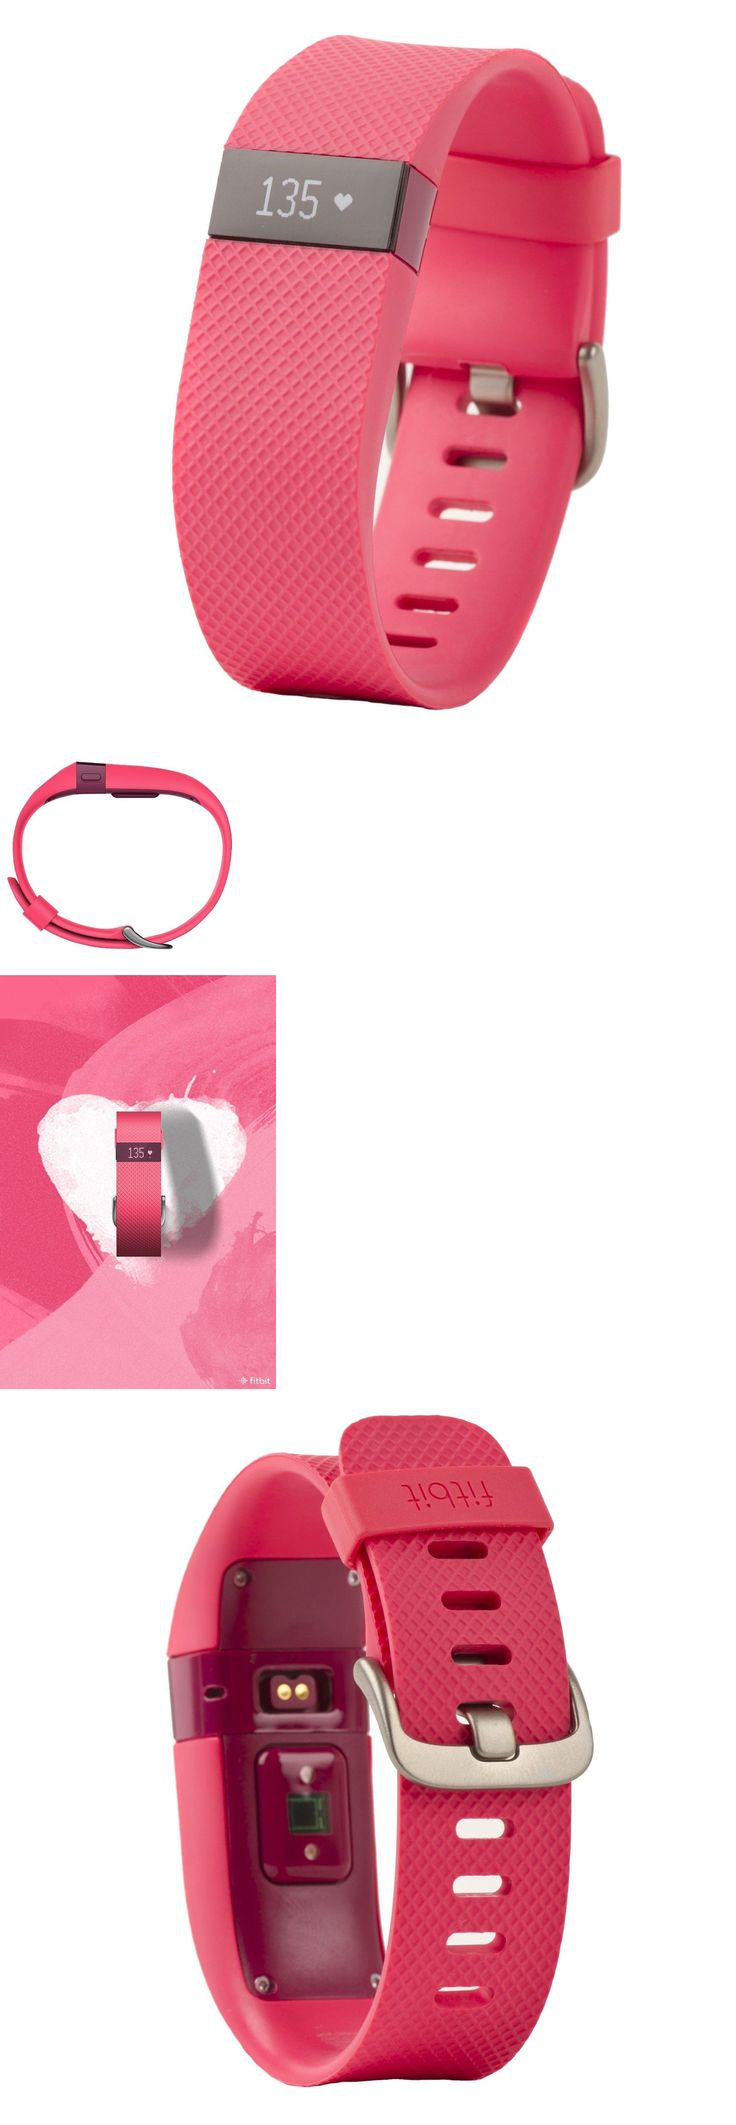 Activity Trackers 179798: New - Fitbit Charge Hr - Wireless Fitness Activity Tracker - Size Small In Pink -> BUY IT NOW ONLY: $56.99 on eBay!